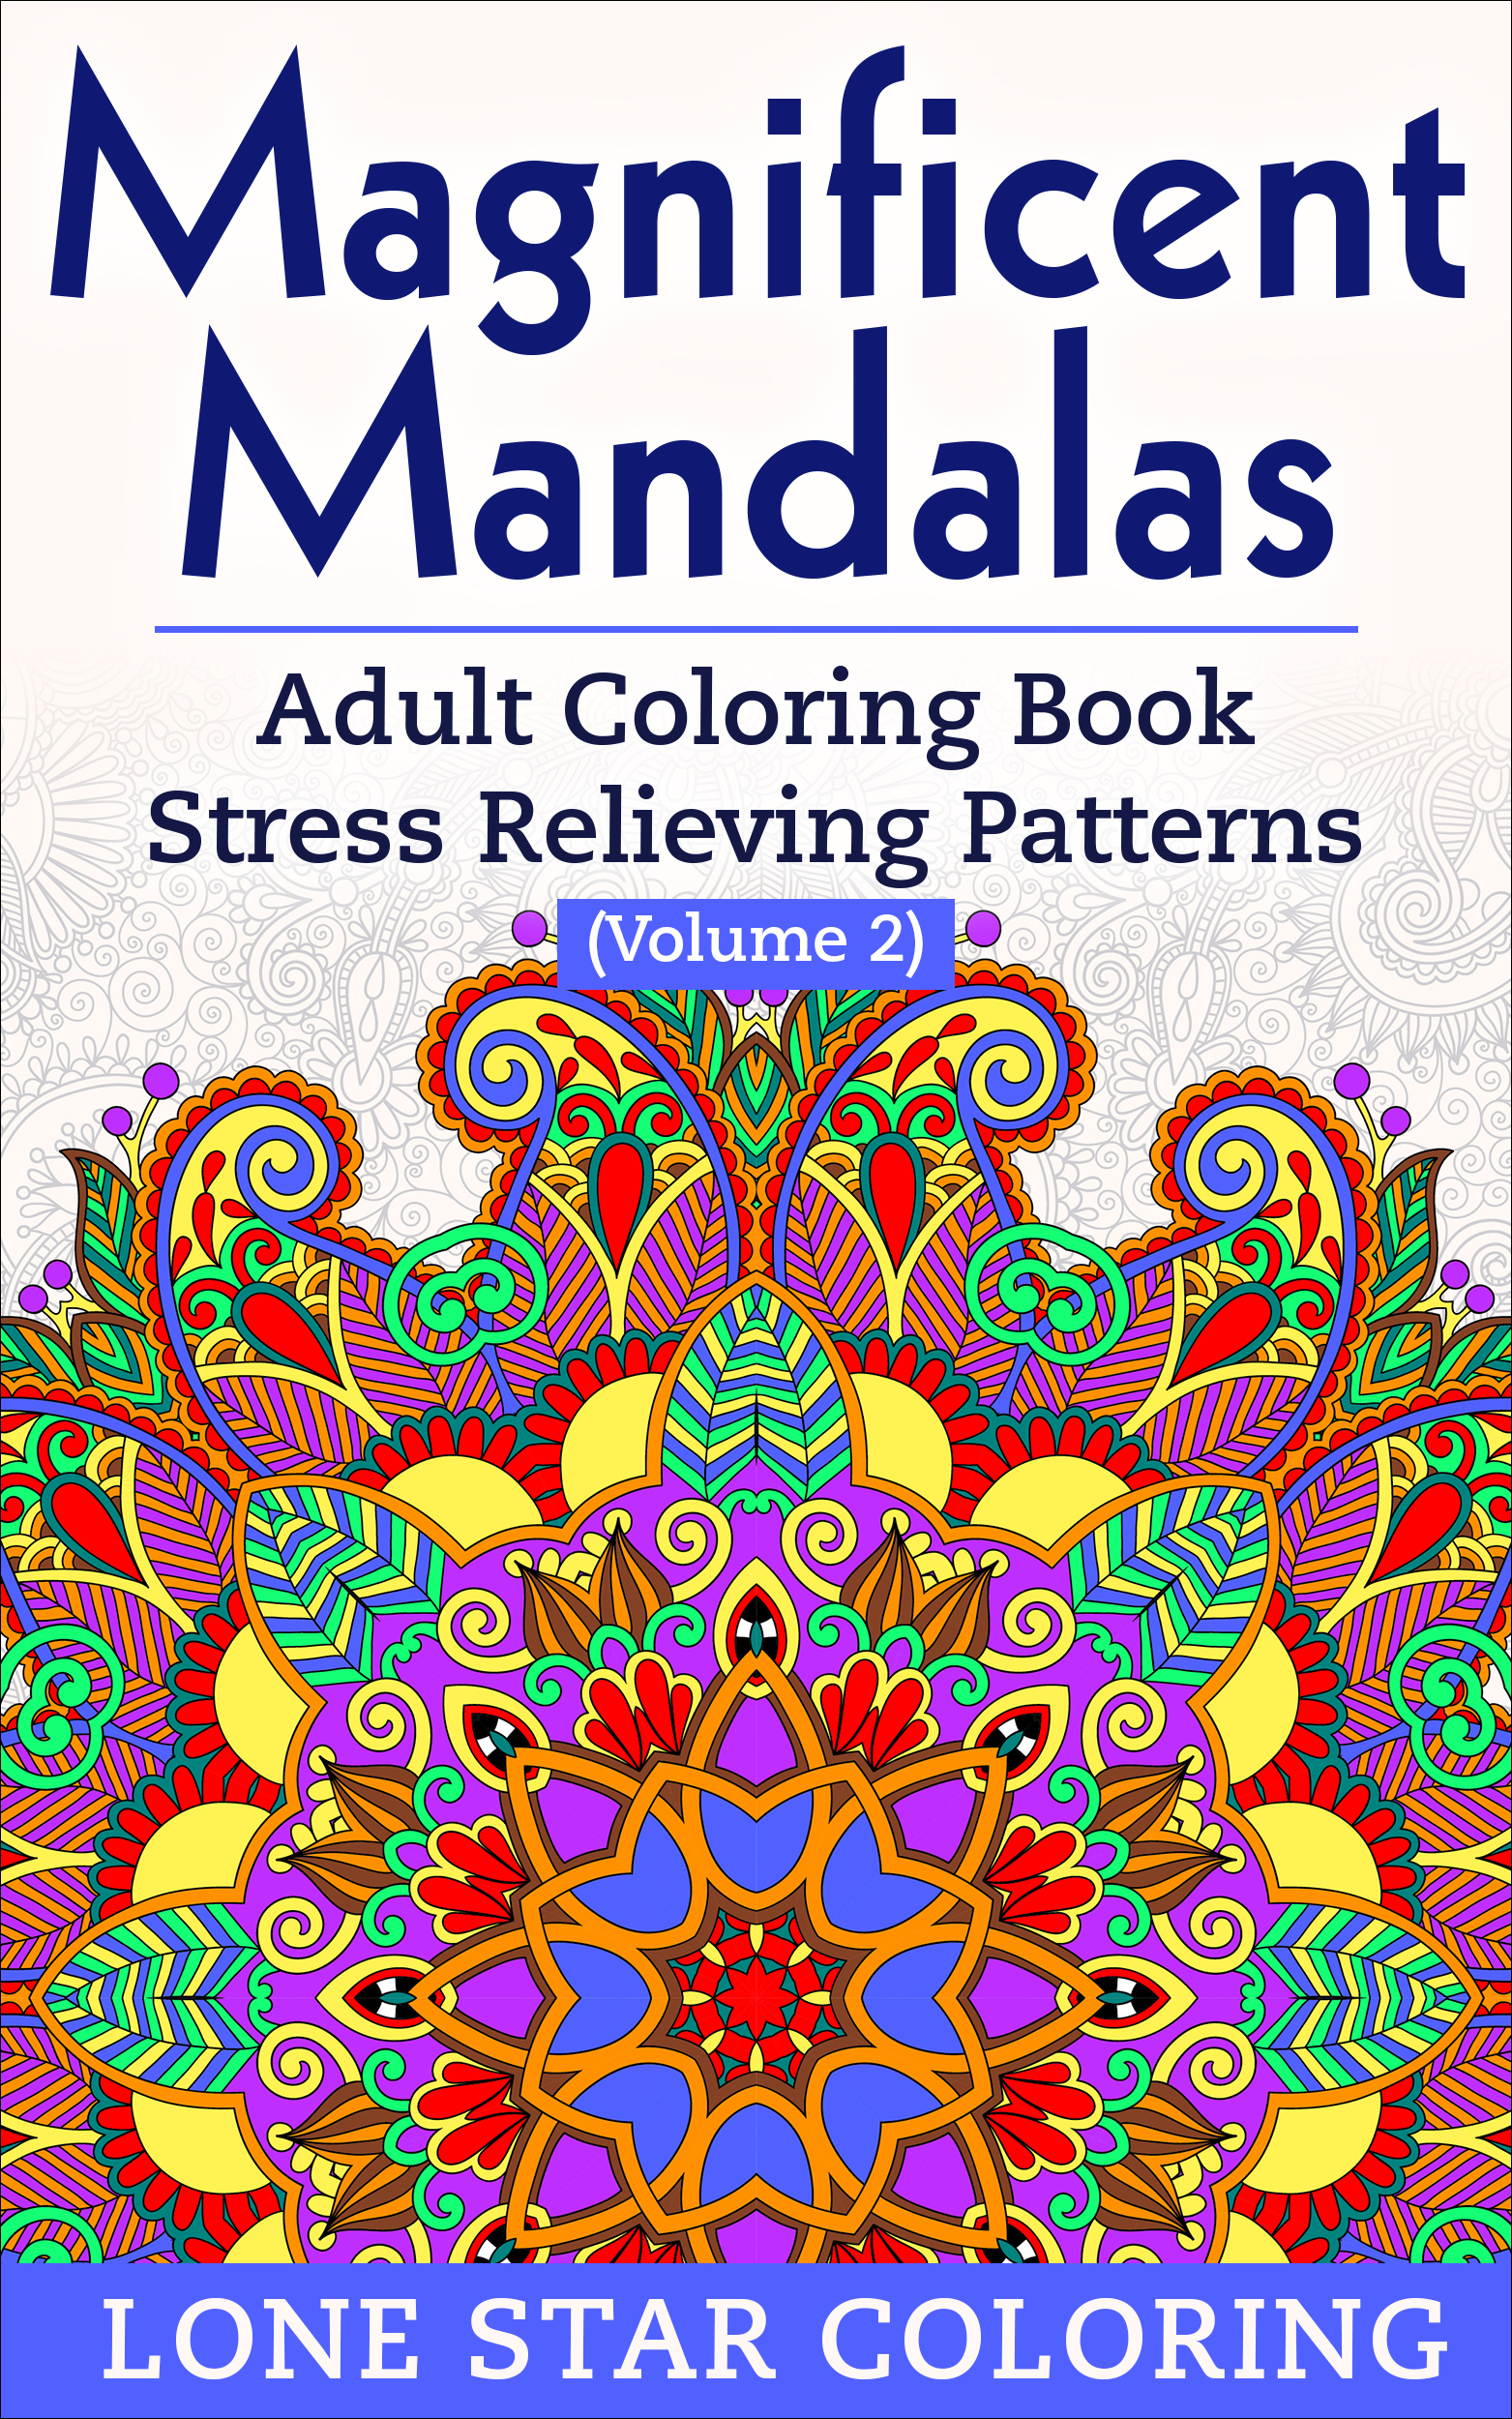 Magnificent Mandalas: Adult Coloring Book Stress Relieving Patterns Volume 2